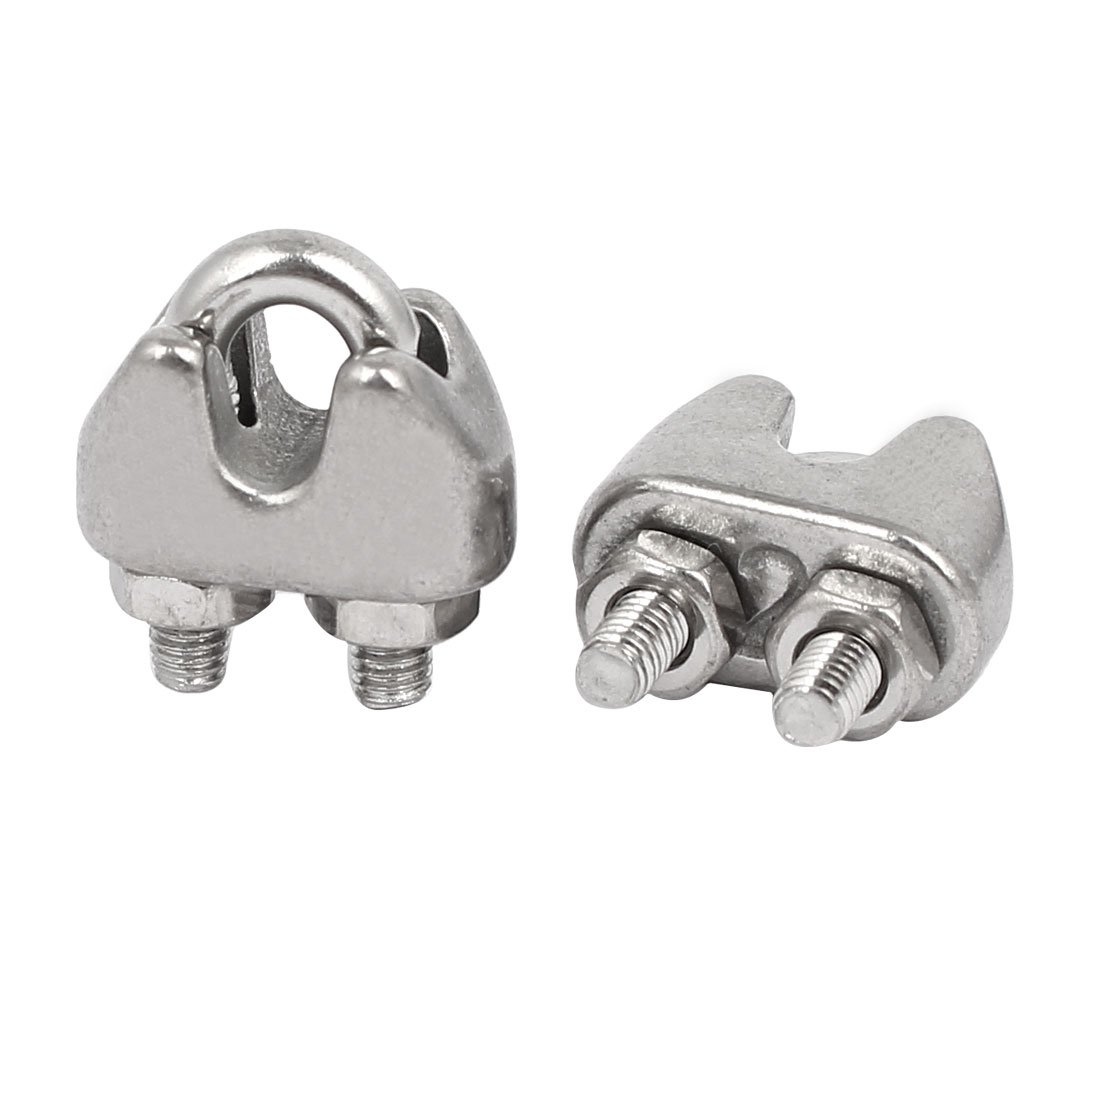 Amazon.com: uxcell M2 1/16 Inch 304 Stainless Steel U-Shape Bolt ...